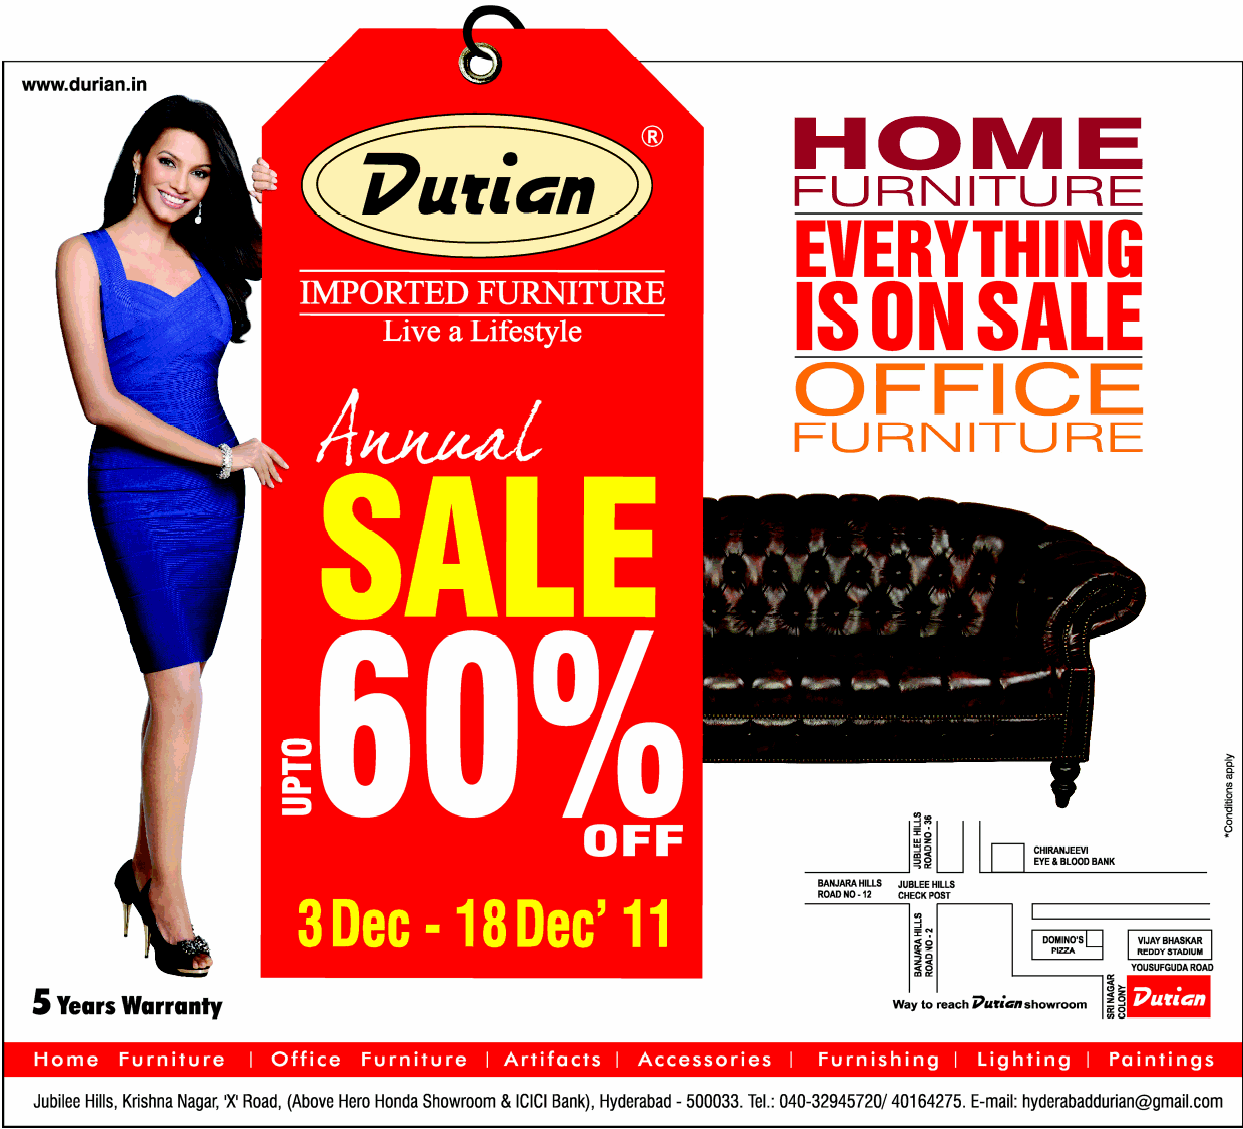 Durian presents annual sale upto 60 off on furniture from 3rd december to 18th december2011